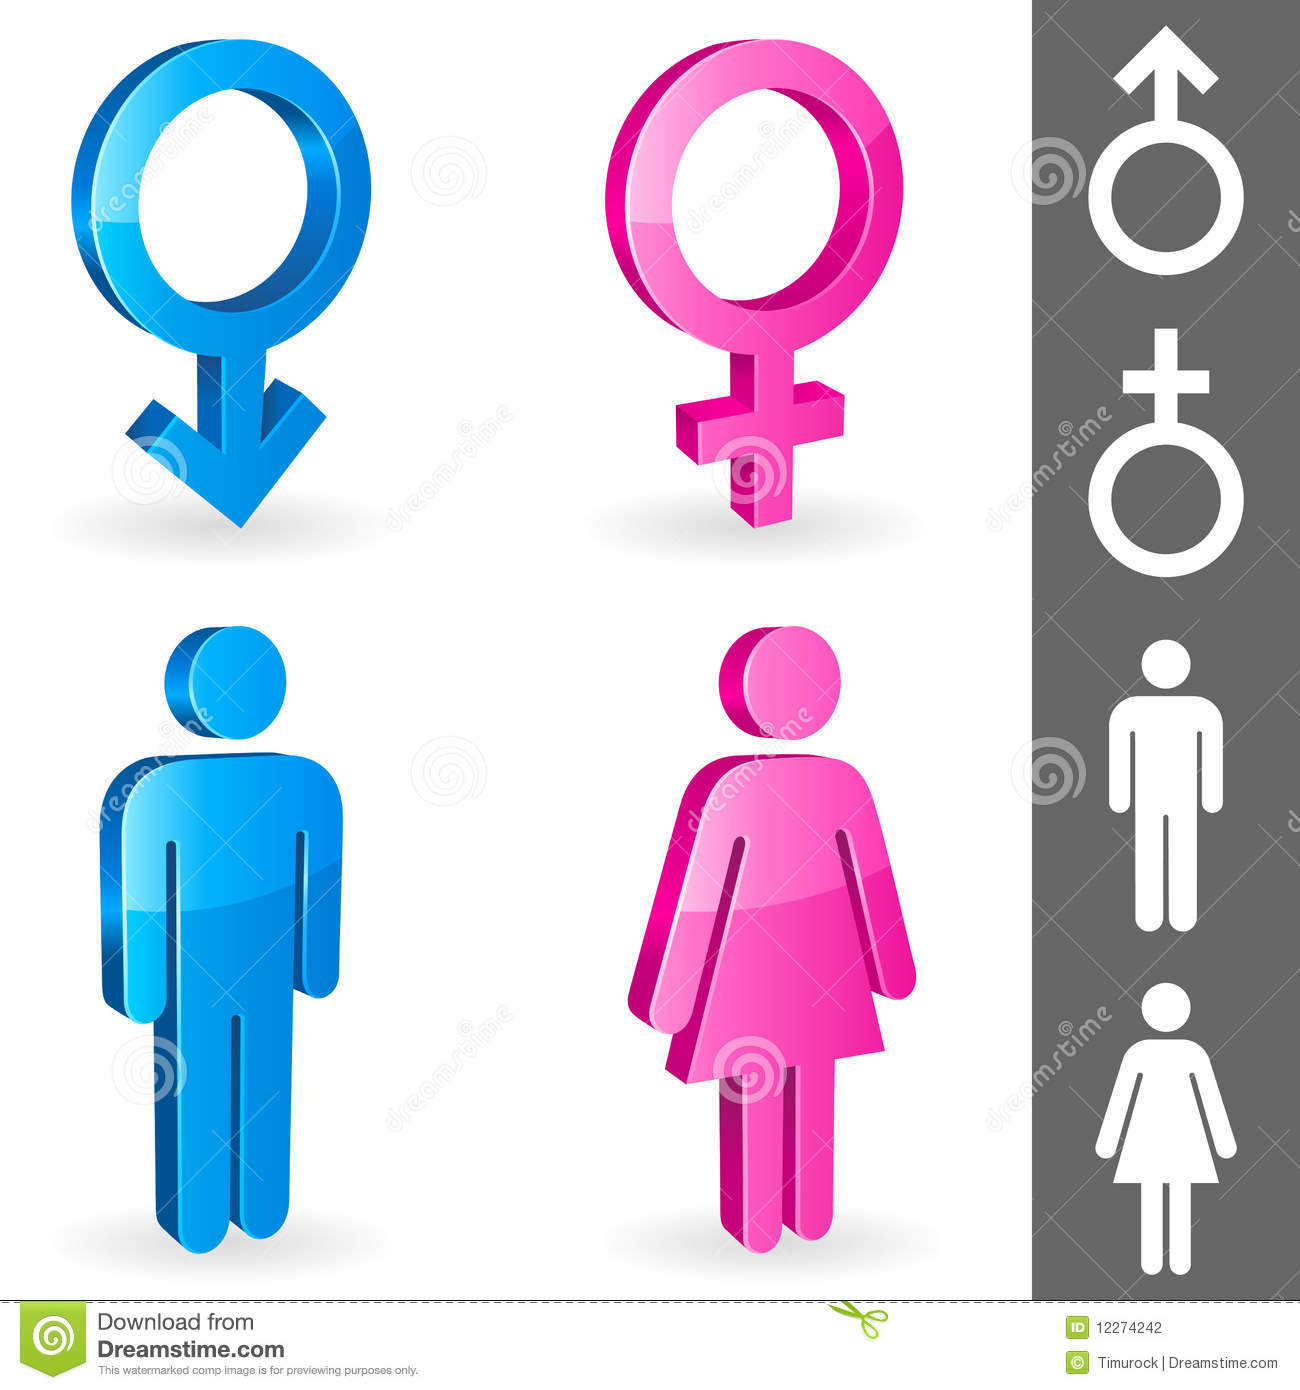 the concept of gender